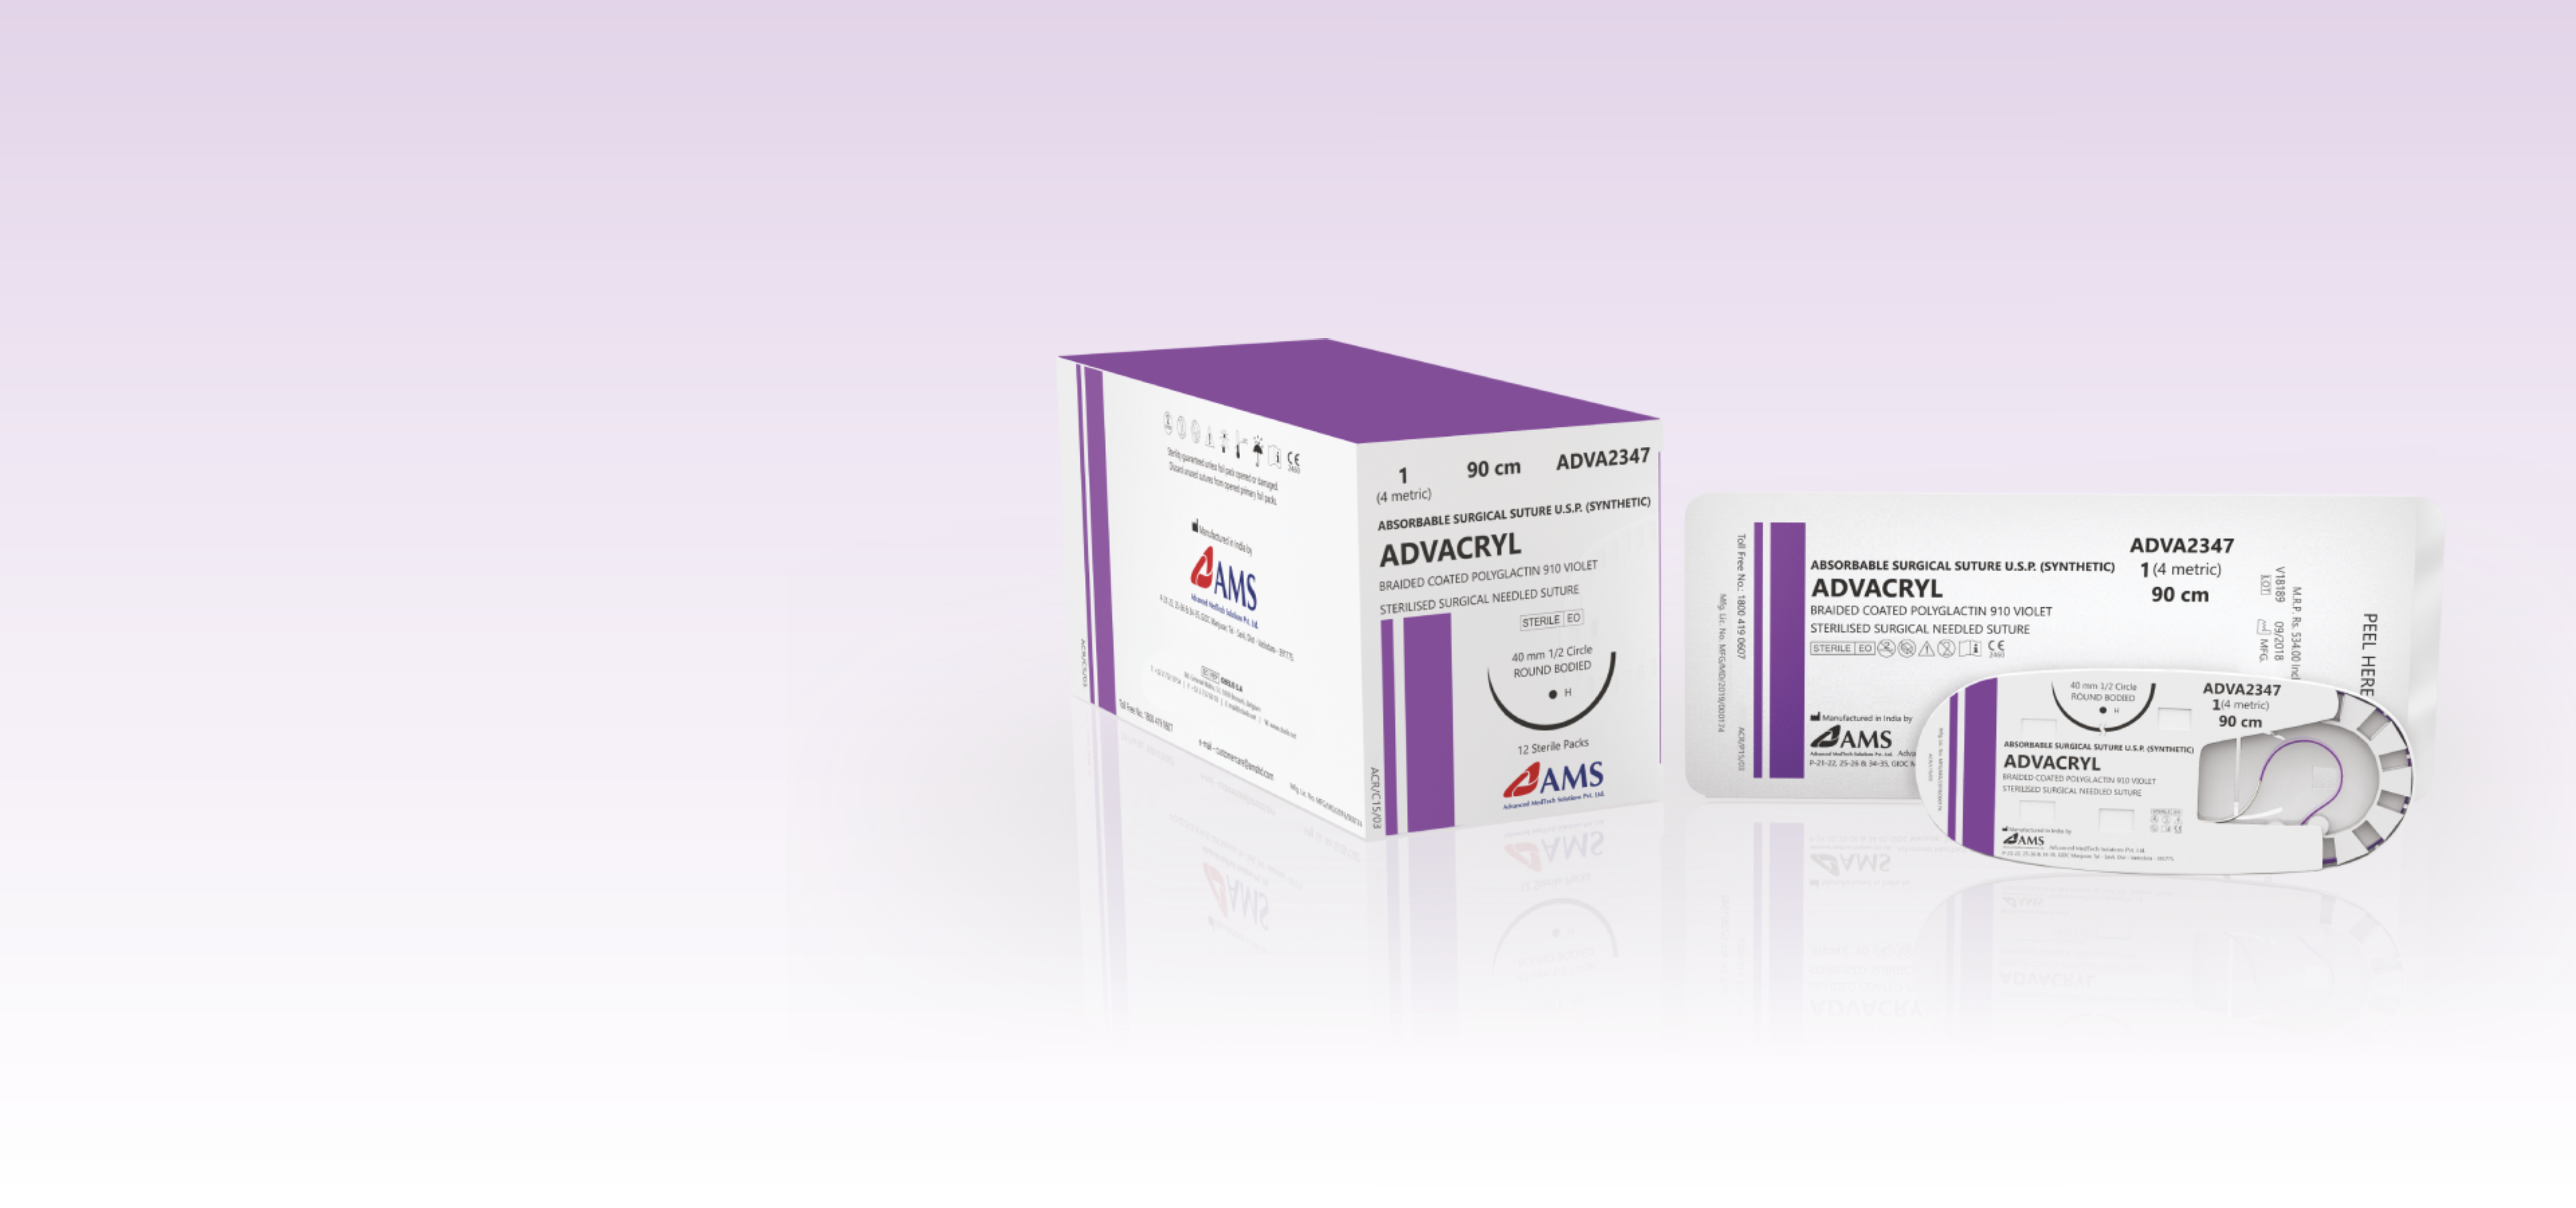 ADVACRYL <span>Polyglactin-910 </span><small>Braided Coated Synthetic Absorbable Surgical Suture</small>